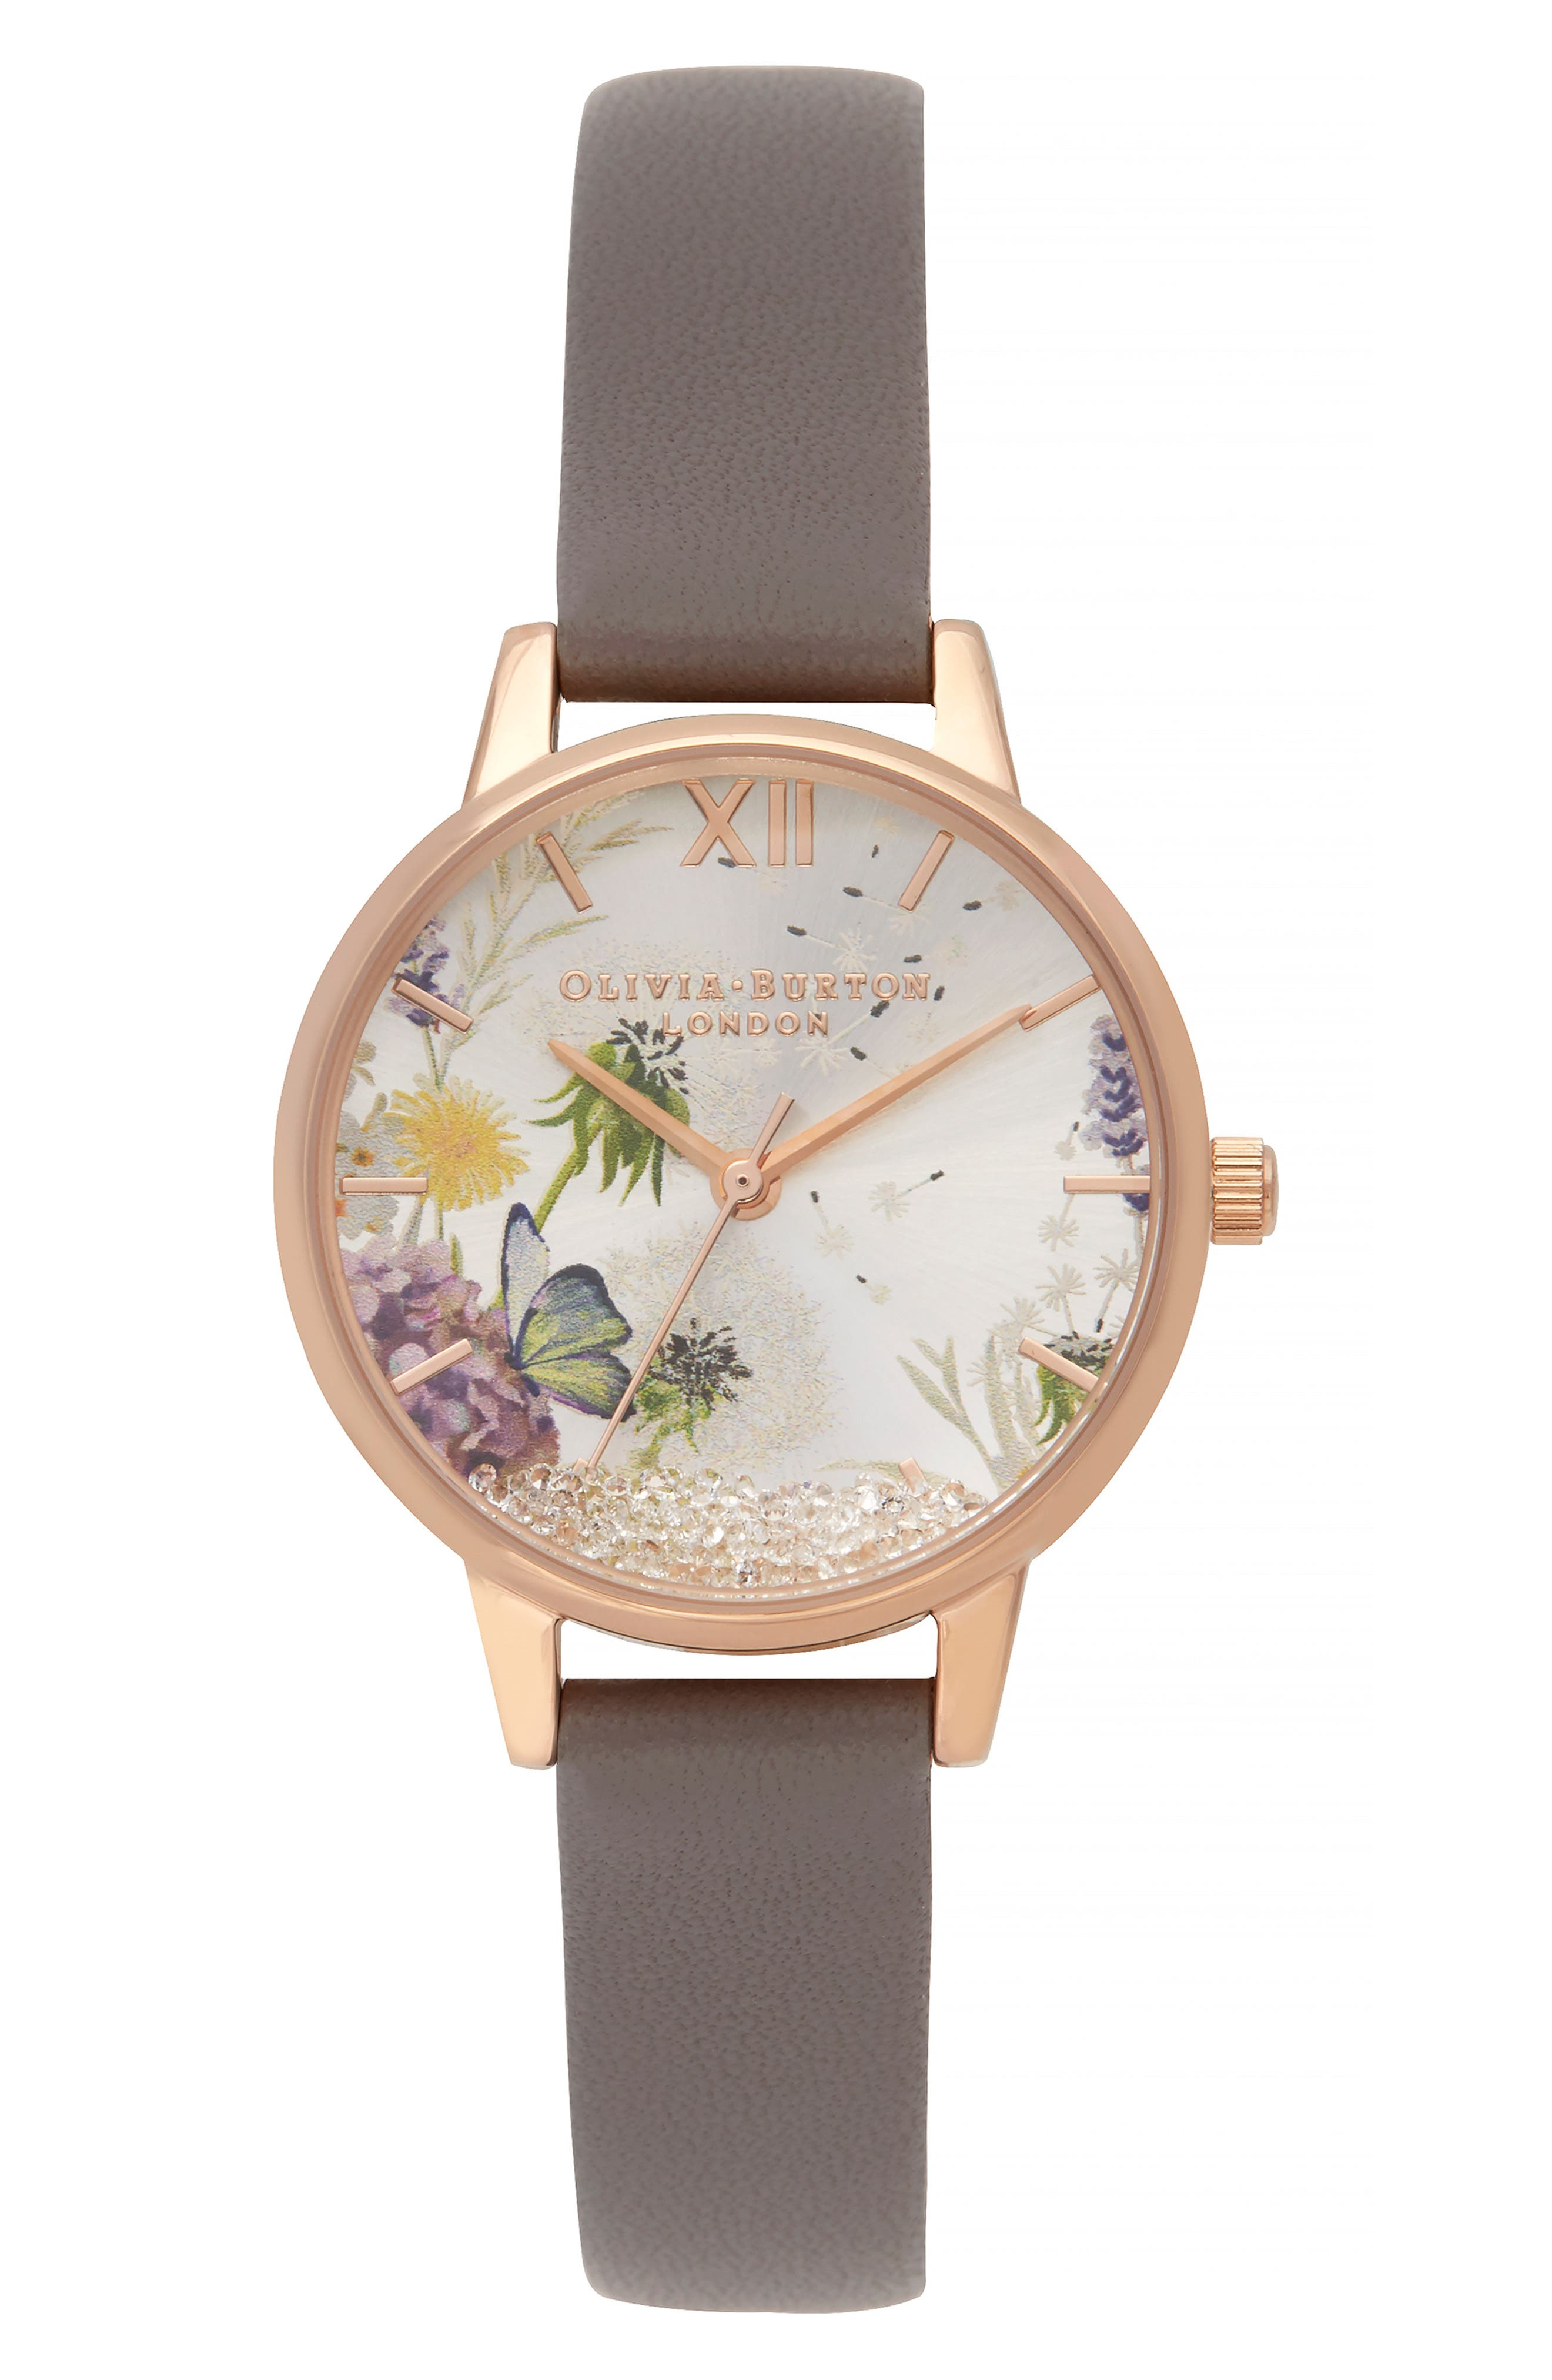 OLIVIA BURTON Wishing Leather Strap Watch, 35Mm in Lond Grey/Silver Flor/Rosegold